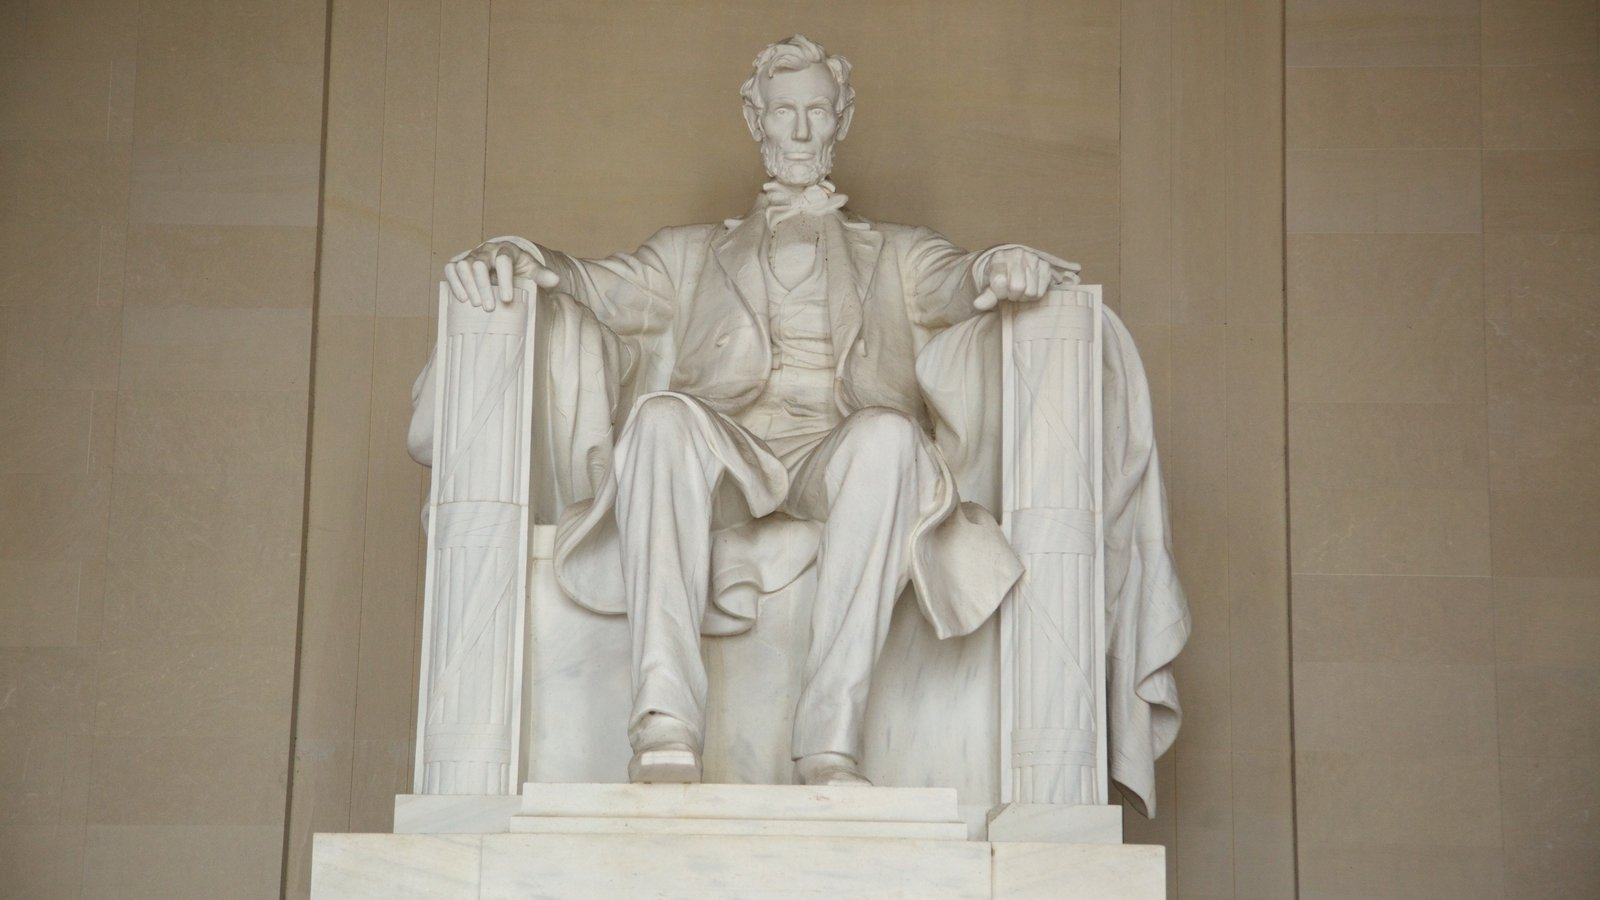 Lincoln Memorial showing a memorial, interior views and a statue or sculpture